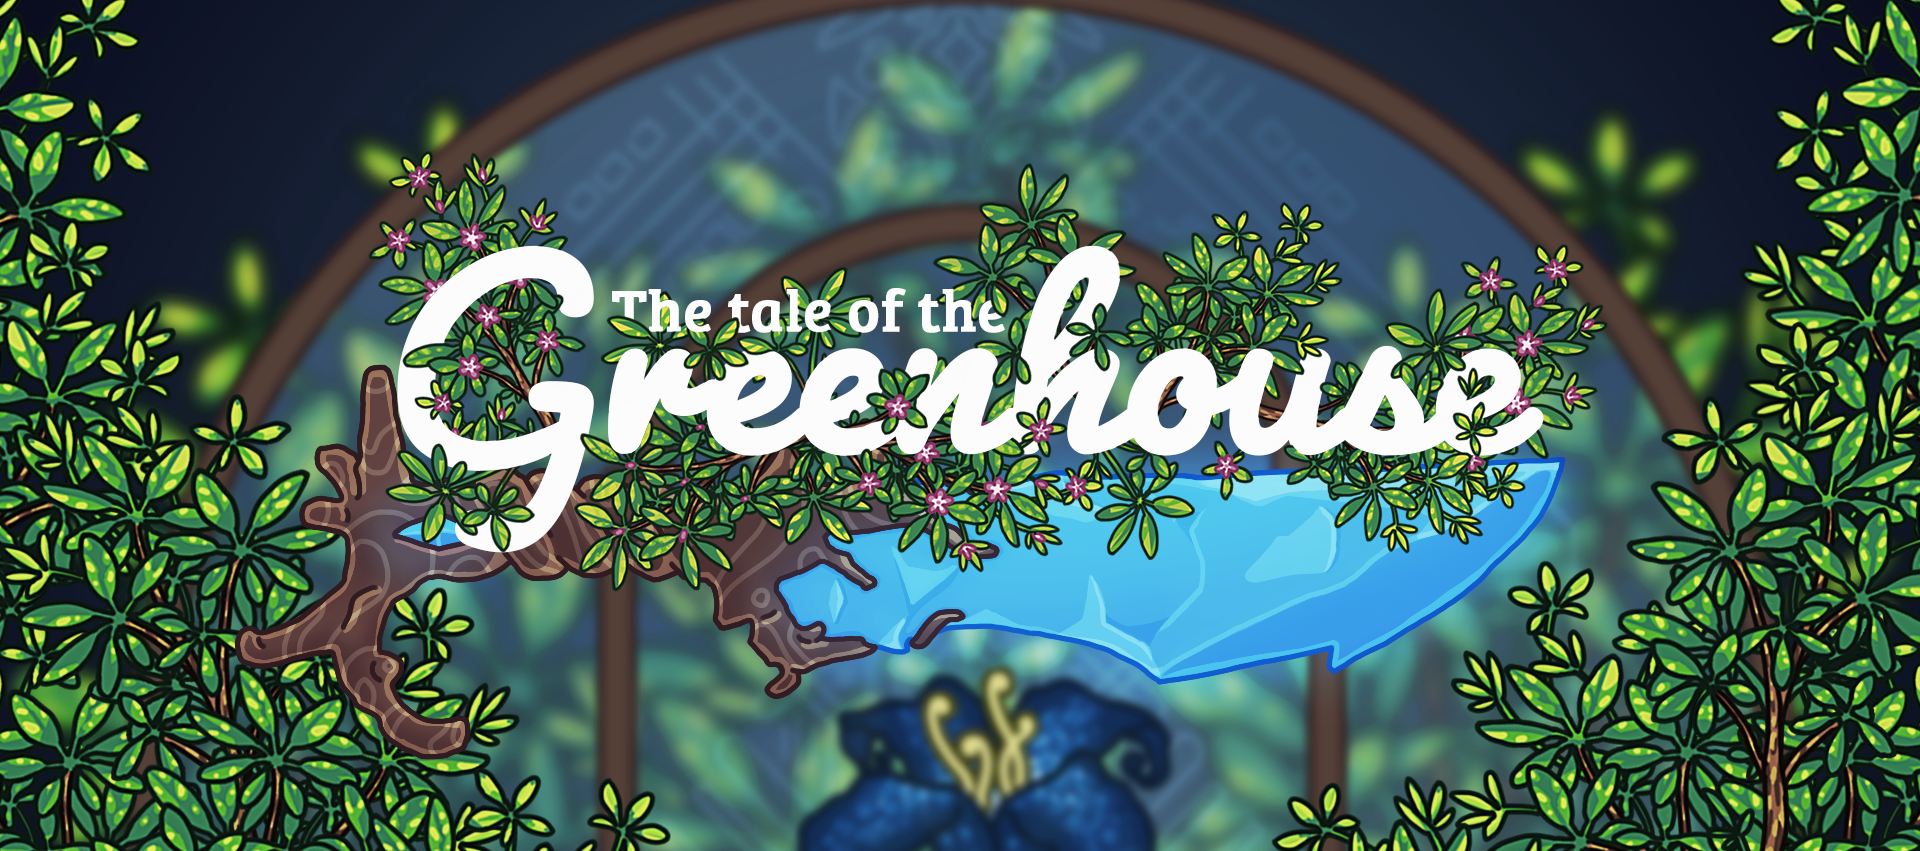 The Tale of the Greenhouse